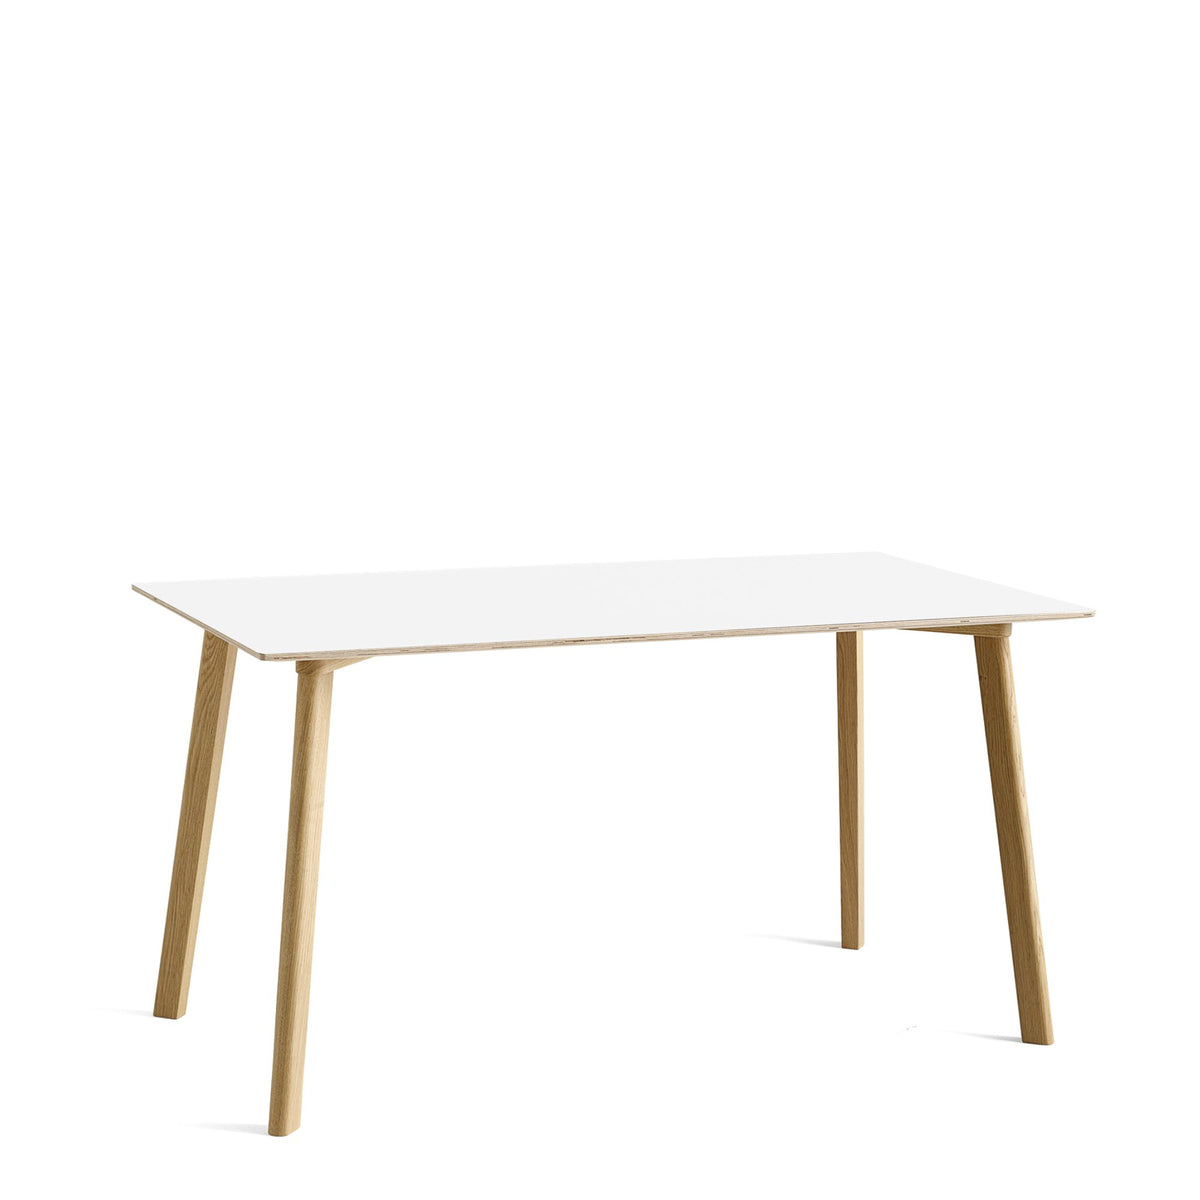 HAY CPH Deux 210 1400mm Pearl White 0029 with Matt Lacquered Oak Base